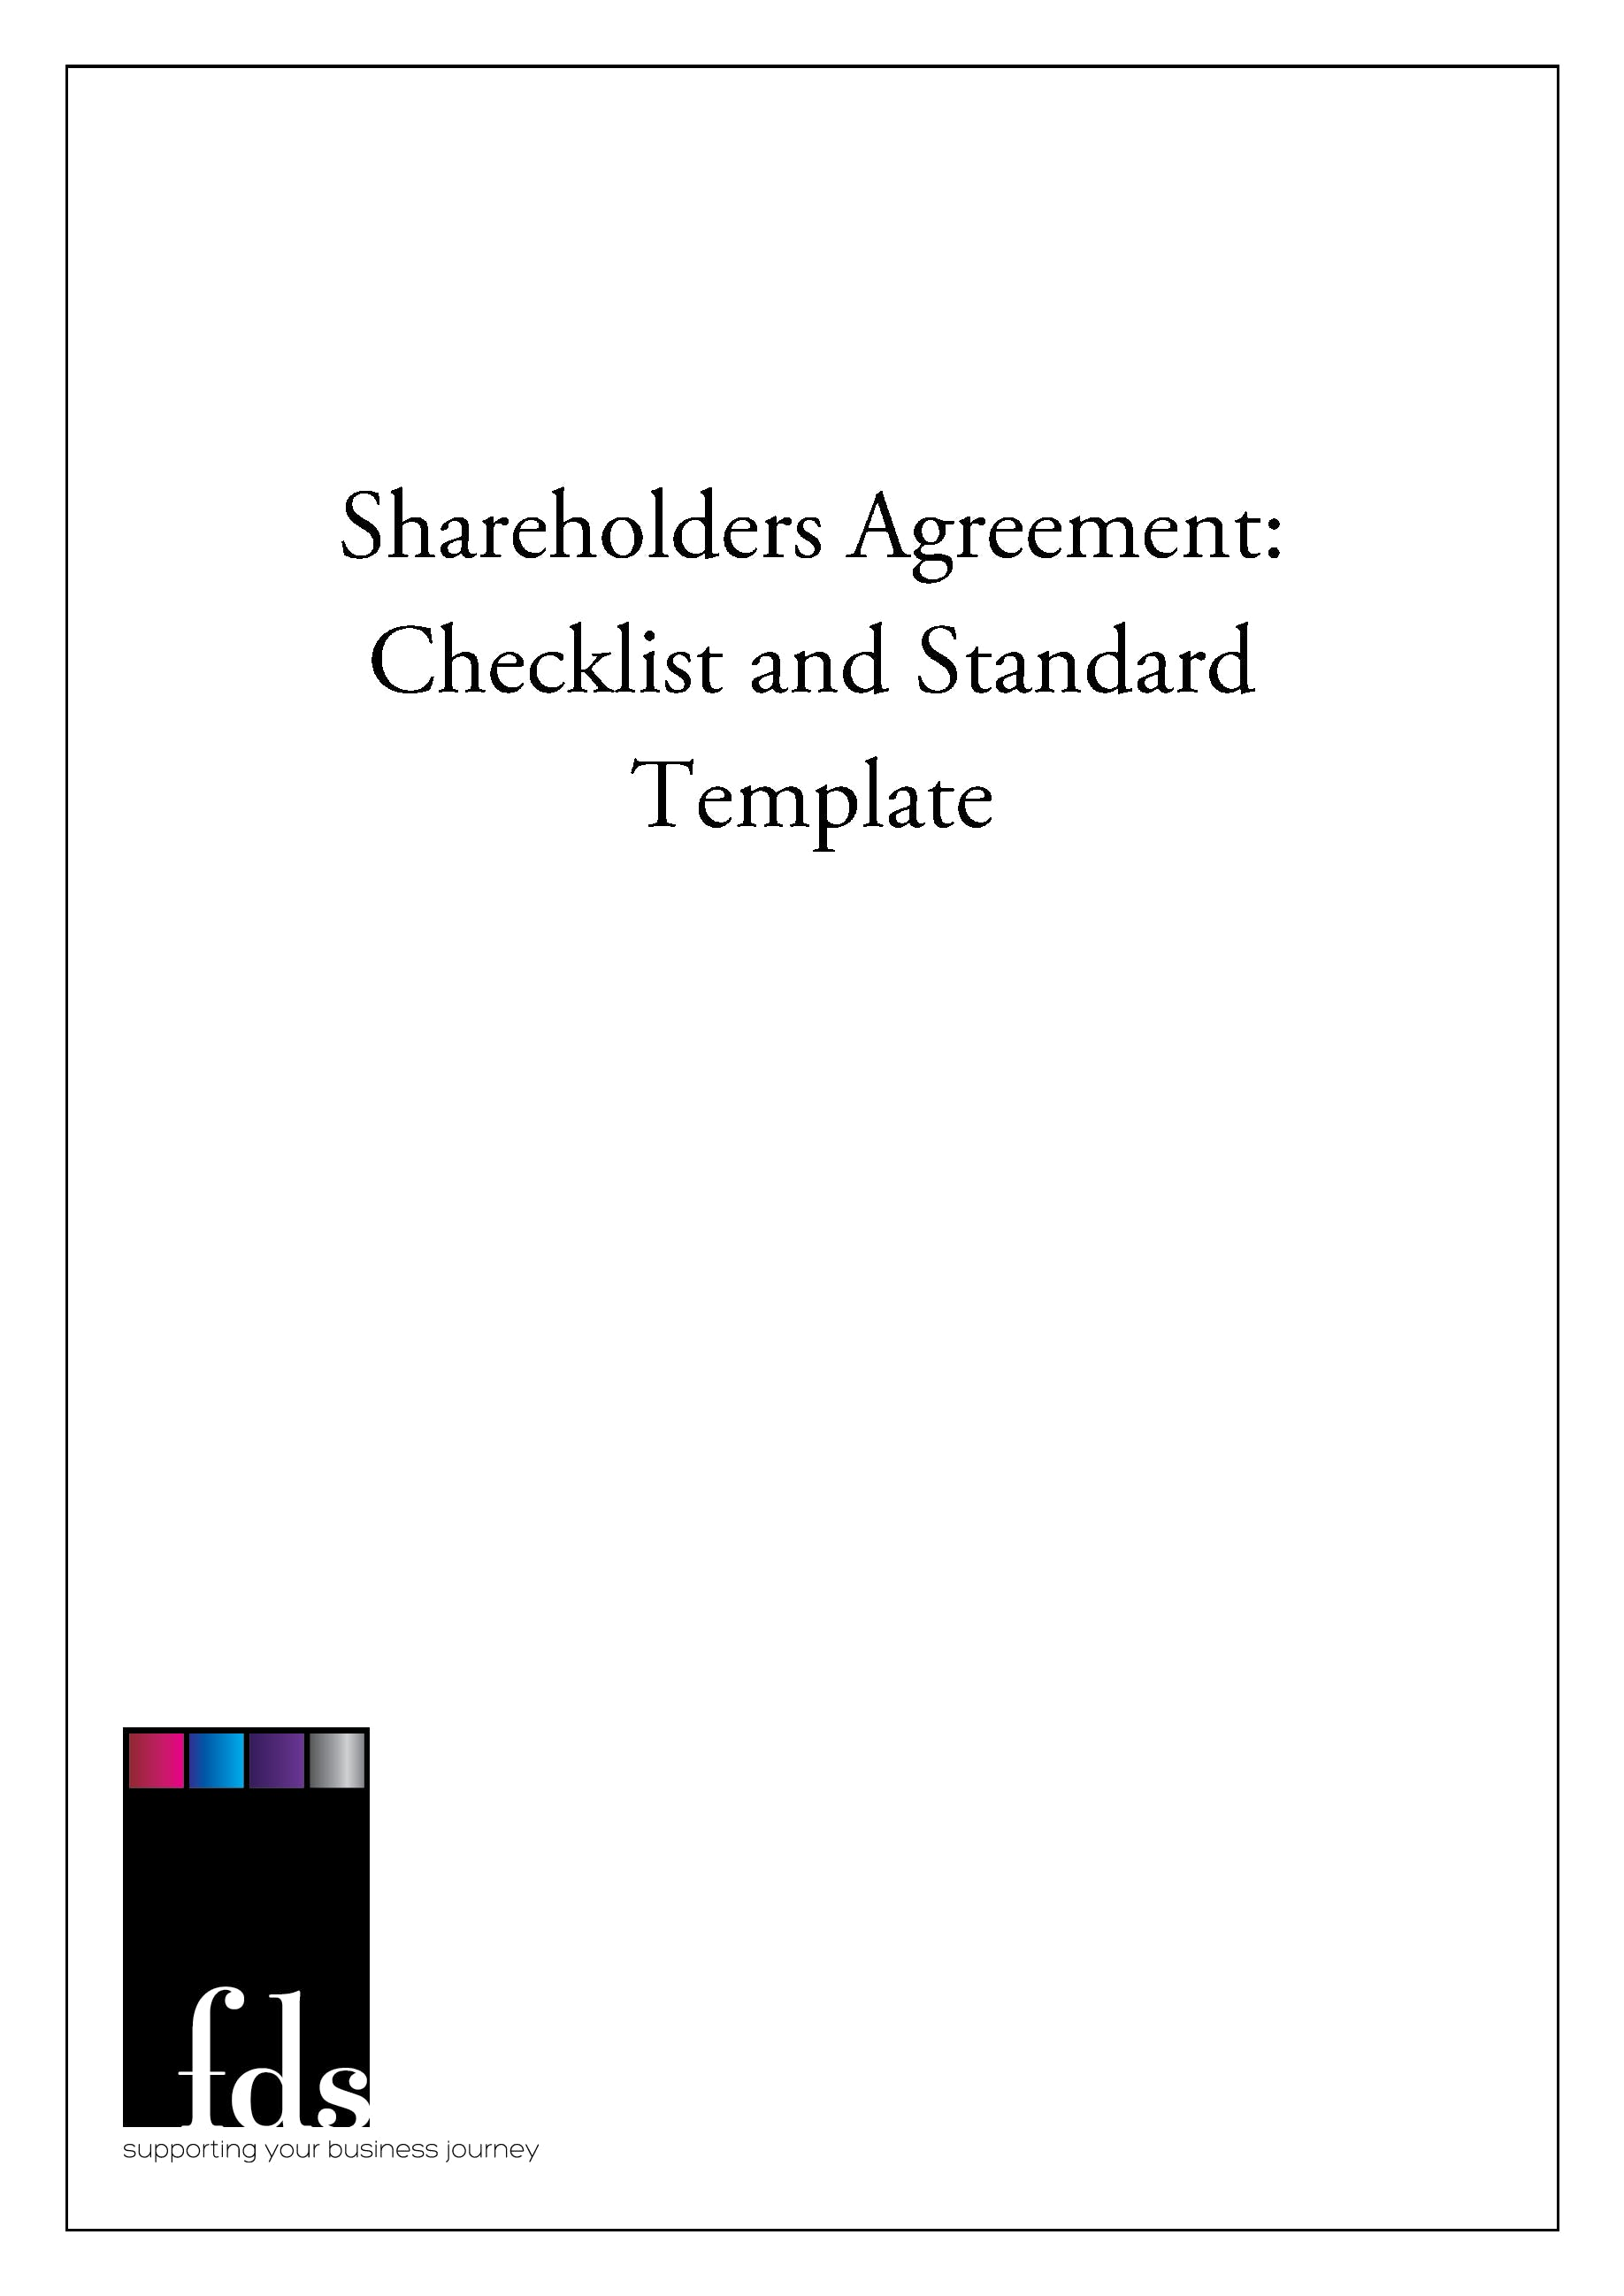 Shareholder Agreements Fds